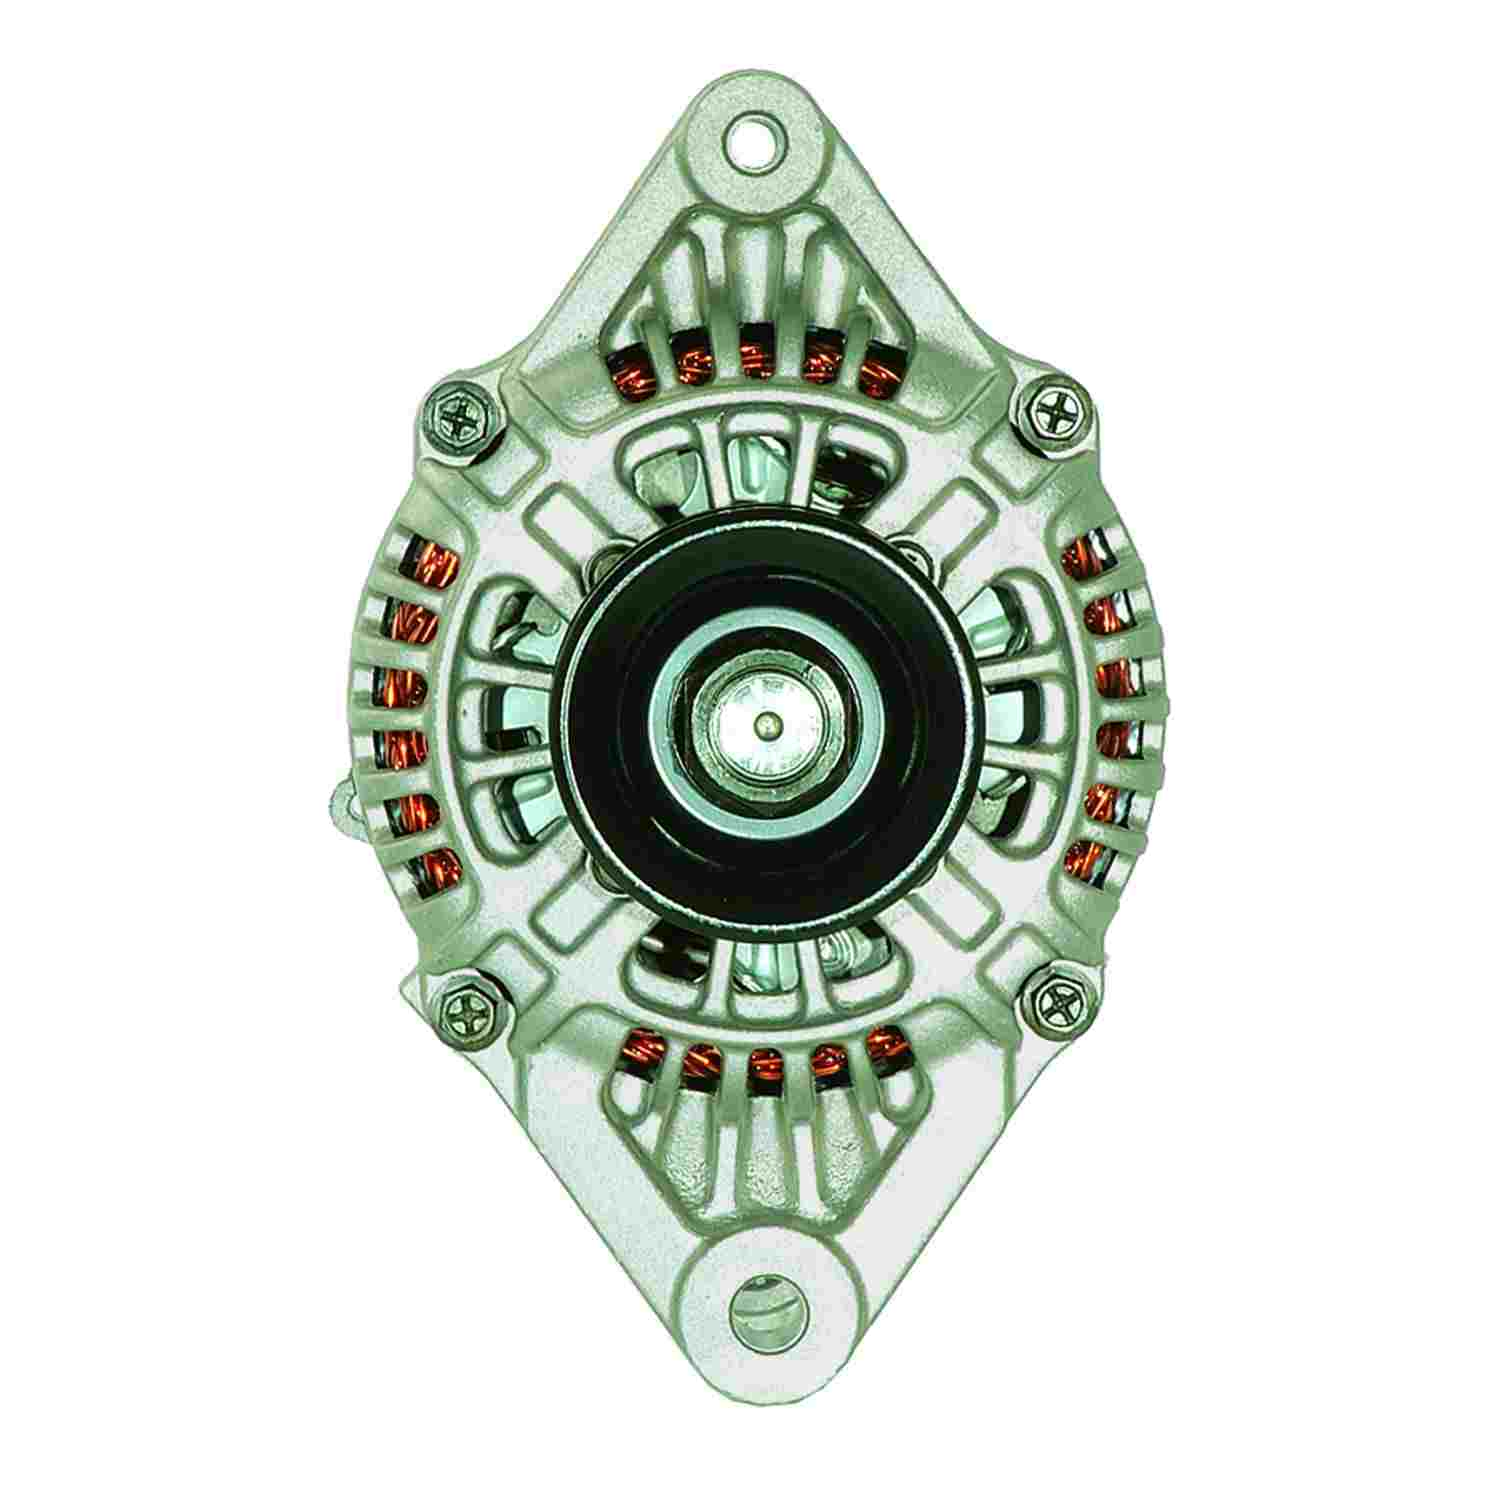 ACDELCO GOLD/PROFESSIONAL - Alternator - DCC 335-1160